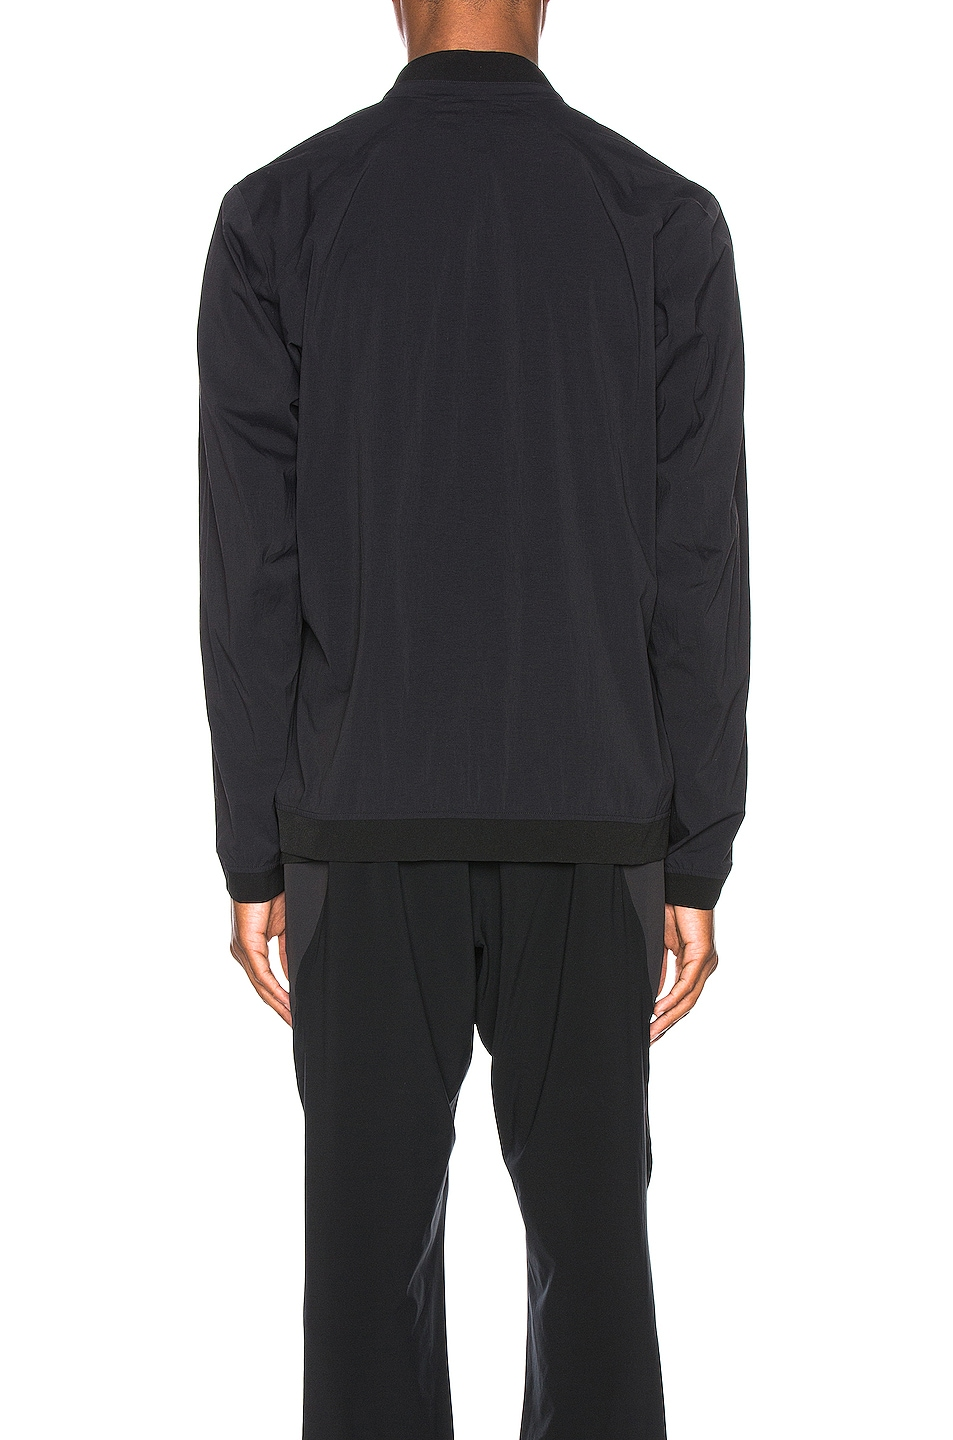 Image 4 of Arc'teryx Veilance Nemis Jacket in Black